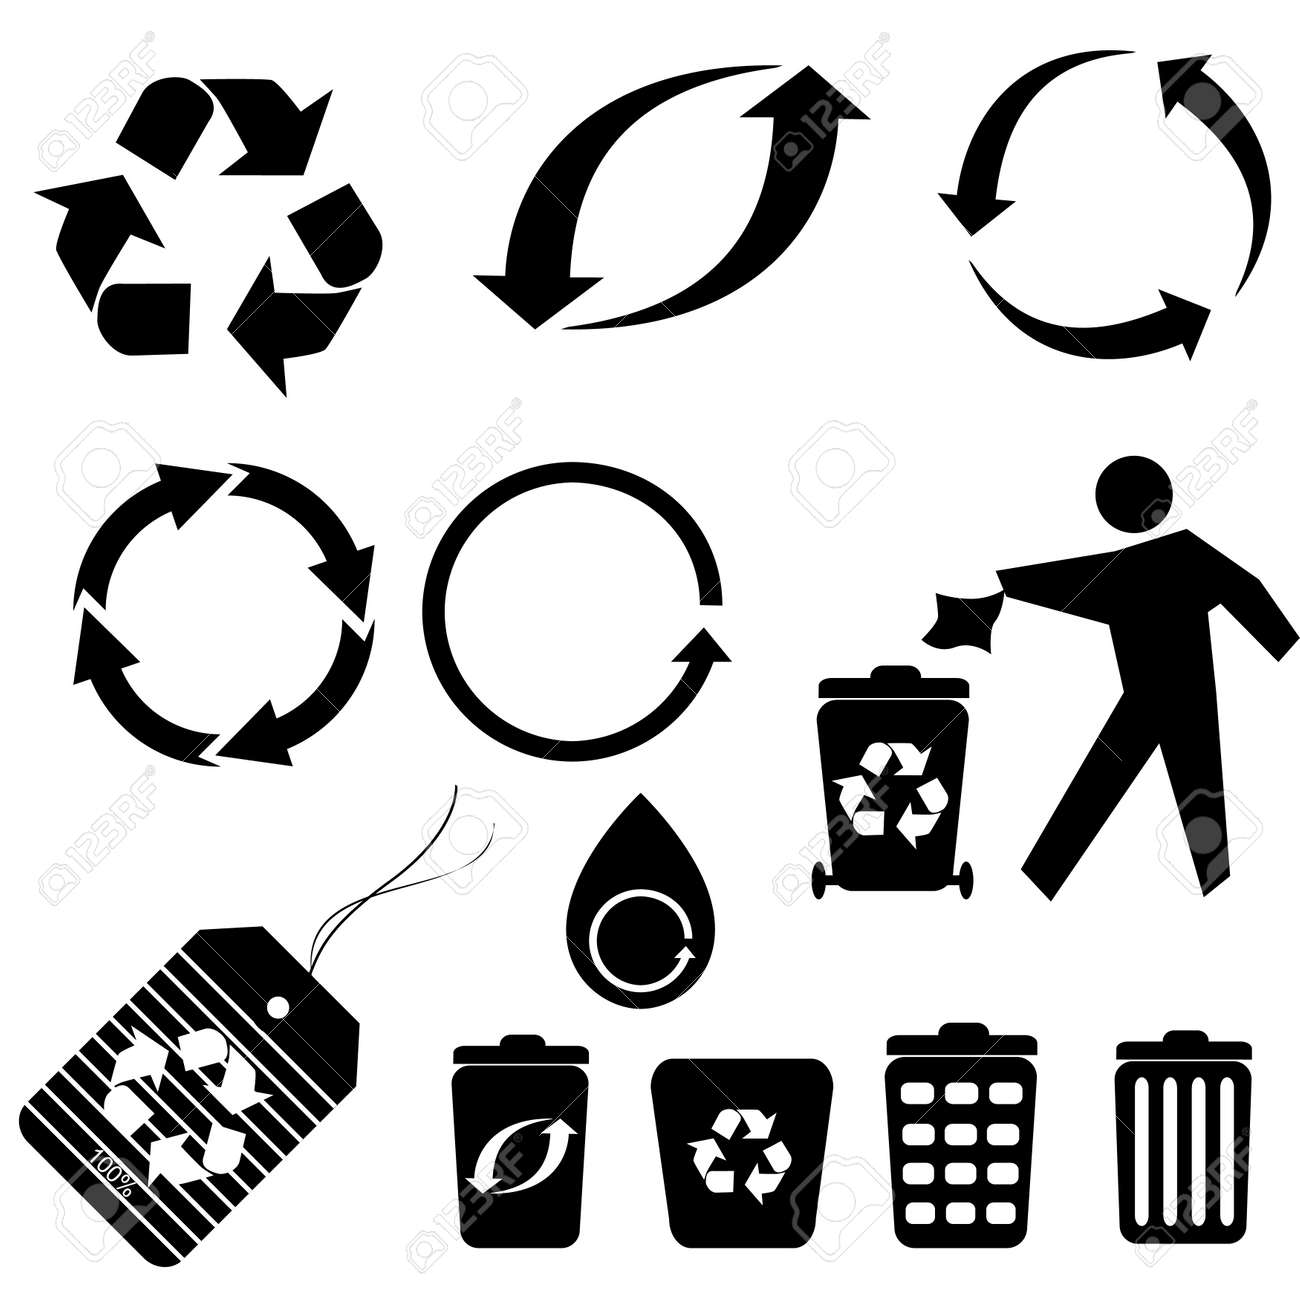 Various recycling symbols and icons royalty free cliparts vectors various recycling symbols and icons stock vector 8295041 biocorpaavc